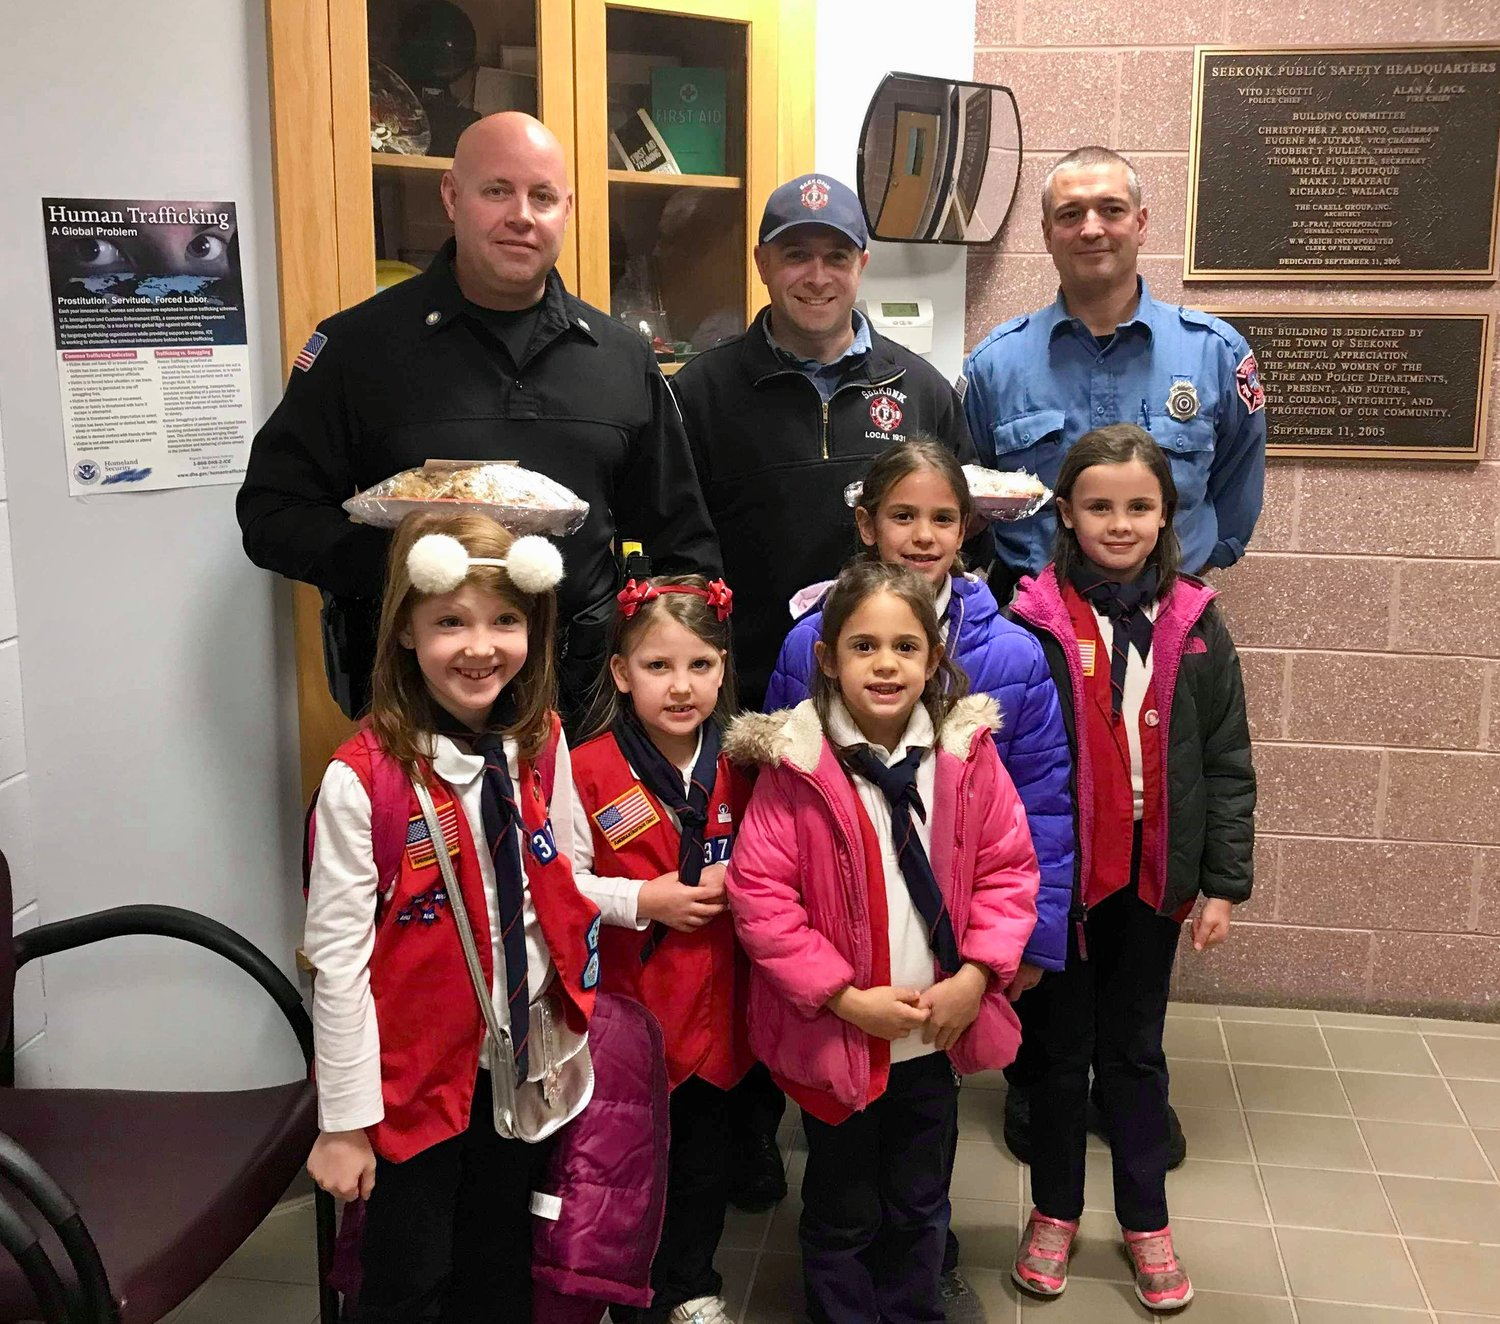 Tenderhearts from American Heritage Girls Troop MA3712 deliver homemade cookies to the Seekonk Police/Fire Station